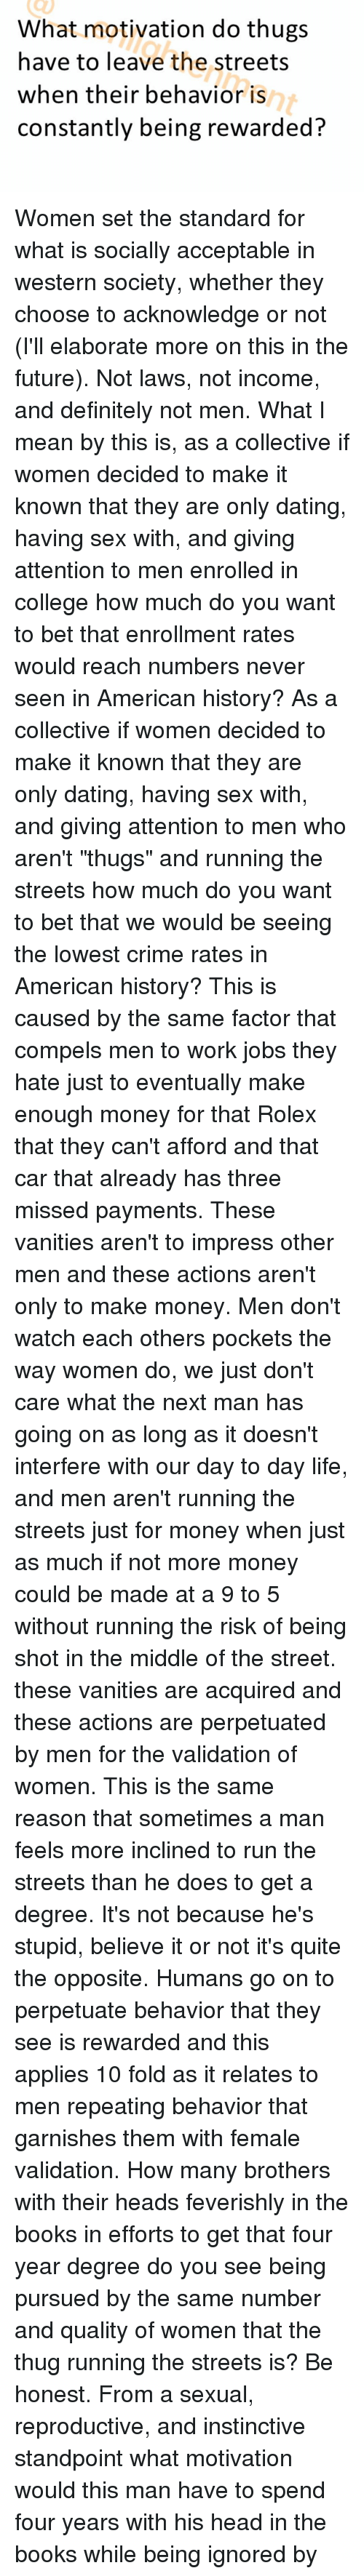 """Applie: What motivation do thugs  have to leave the streets  when their behavior is  constantly being rewarded Women set the standard for what is socially acceptable in western society, whether they choose to acknowledge or not (I'll elaborate more on this in the future). Not laws, not income, and definitely not men. What I mean by this is, as a collective if women decided to make it known that they are only dating, having sex with, and giving attention to men enrolled in college how much do you want to bet that enrollment rates would reach numbers never seen in American history? As a collective if women decided to make it known that they are only dating, having sex with, and giving attention to men who aren't """"thugs"""" and running the streets how much do you want to bet that we would be seeing the lowest crime rates in American history? This is caused by the same factor that compels men to work jobs they hate just to eventually make enough money for that Rolex that they can't afford and that car that already has three missed payments. These vanities aren't to impress other men and these actions aren't only to make money. Men don't watch each others pockets the way women do, we just don't care what the next man has going on as long as it doesn't interfere with our day to day life, and men aren't running the streets just for money when just as much if not more money could be made at a 9 to 5 without running the risk of being shot in the middle of the street. these vanities are acquired and these actions are perpetuated by men for the validation of women. This is the same reason that sometimes a man feels more inclined to run the streets than he does to get a degree. It's not because he's stupid, believe it or not it's quite the opposite. Humans go on to perpetuate behavior that they see is rewarded and this applies 10 fold as it relates to men repeating behavior that garnishes them with female validation. How many brothers with their heads feverishly in the books in ef"""